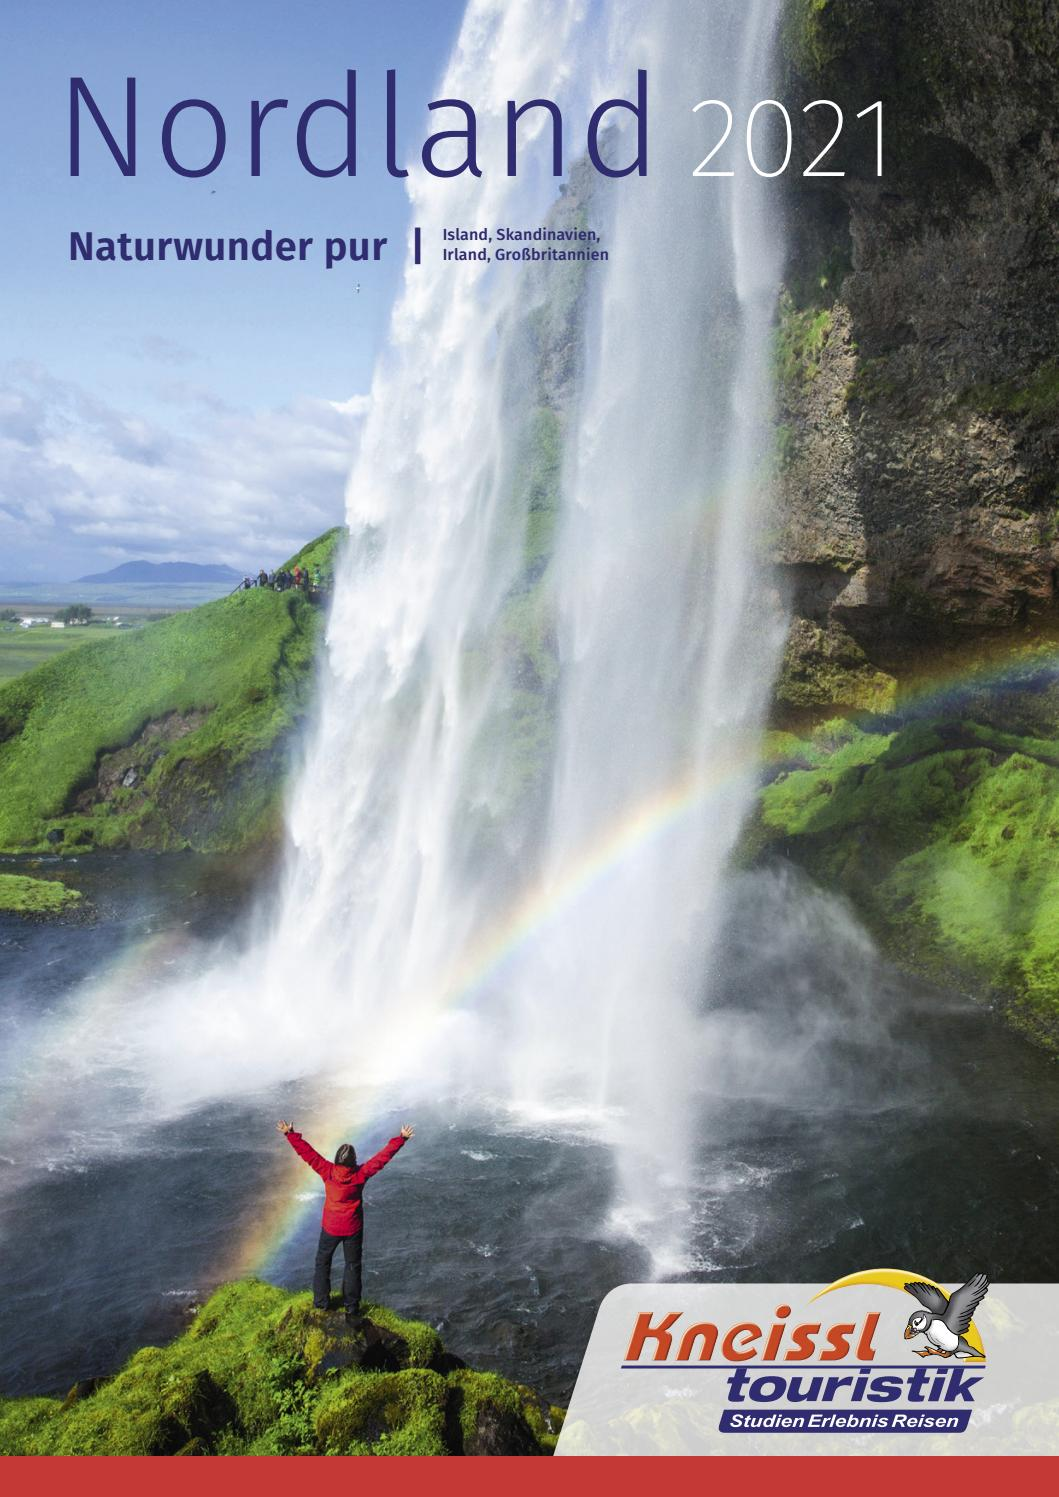 Nordland 2021 By Kneissl Touristik Issuu